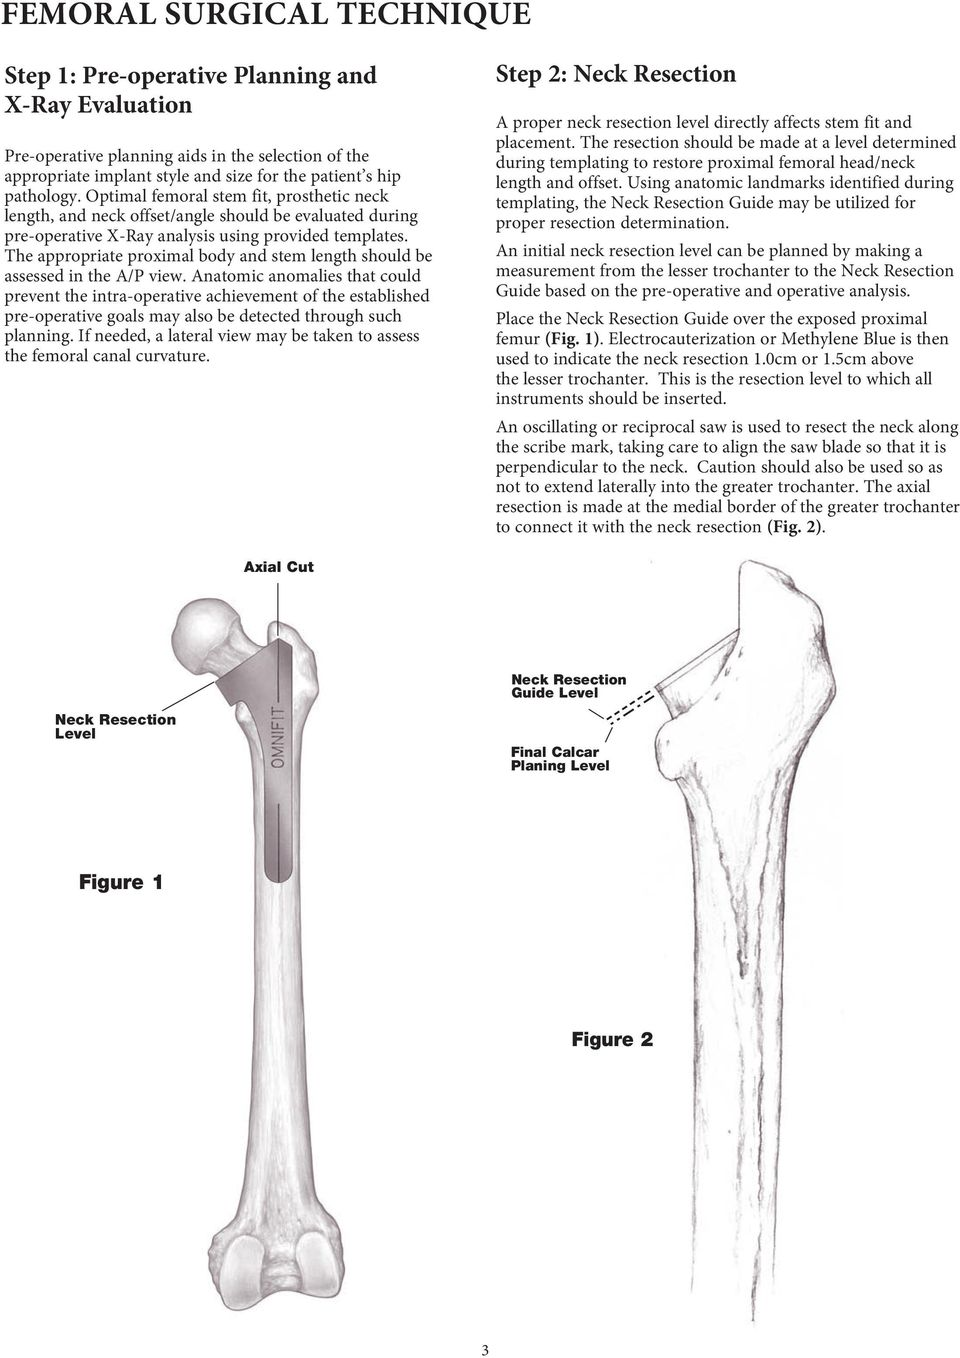 The appropriate proximal body and stem length should be assessed in the A/P view.